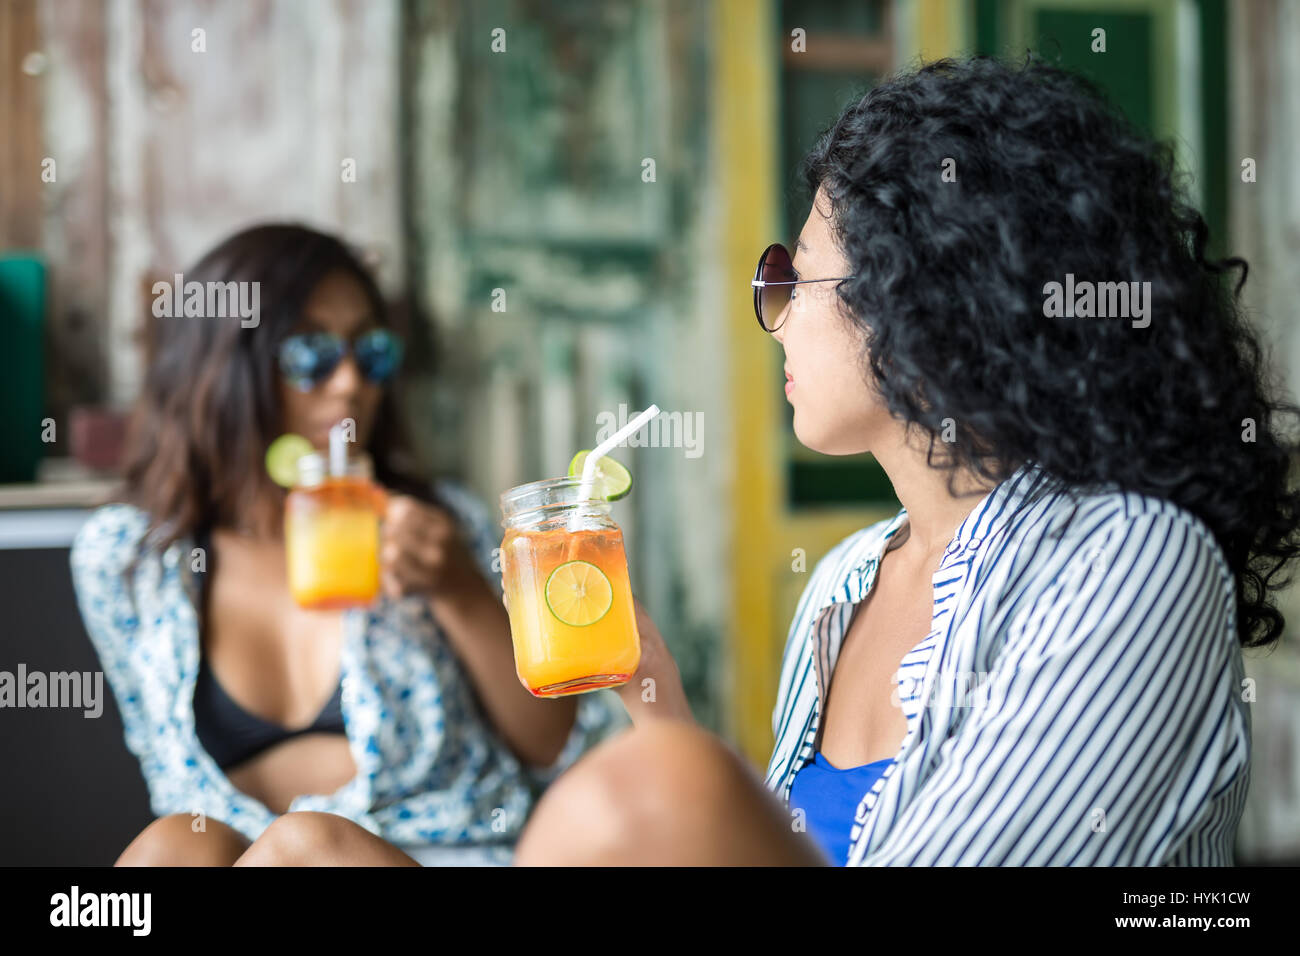 Girls with cocktails - Stock Image